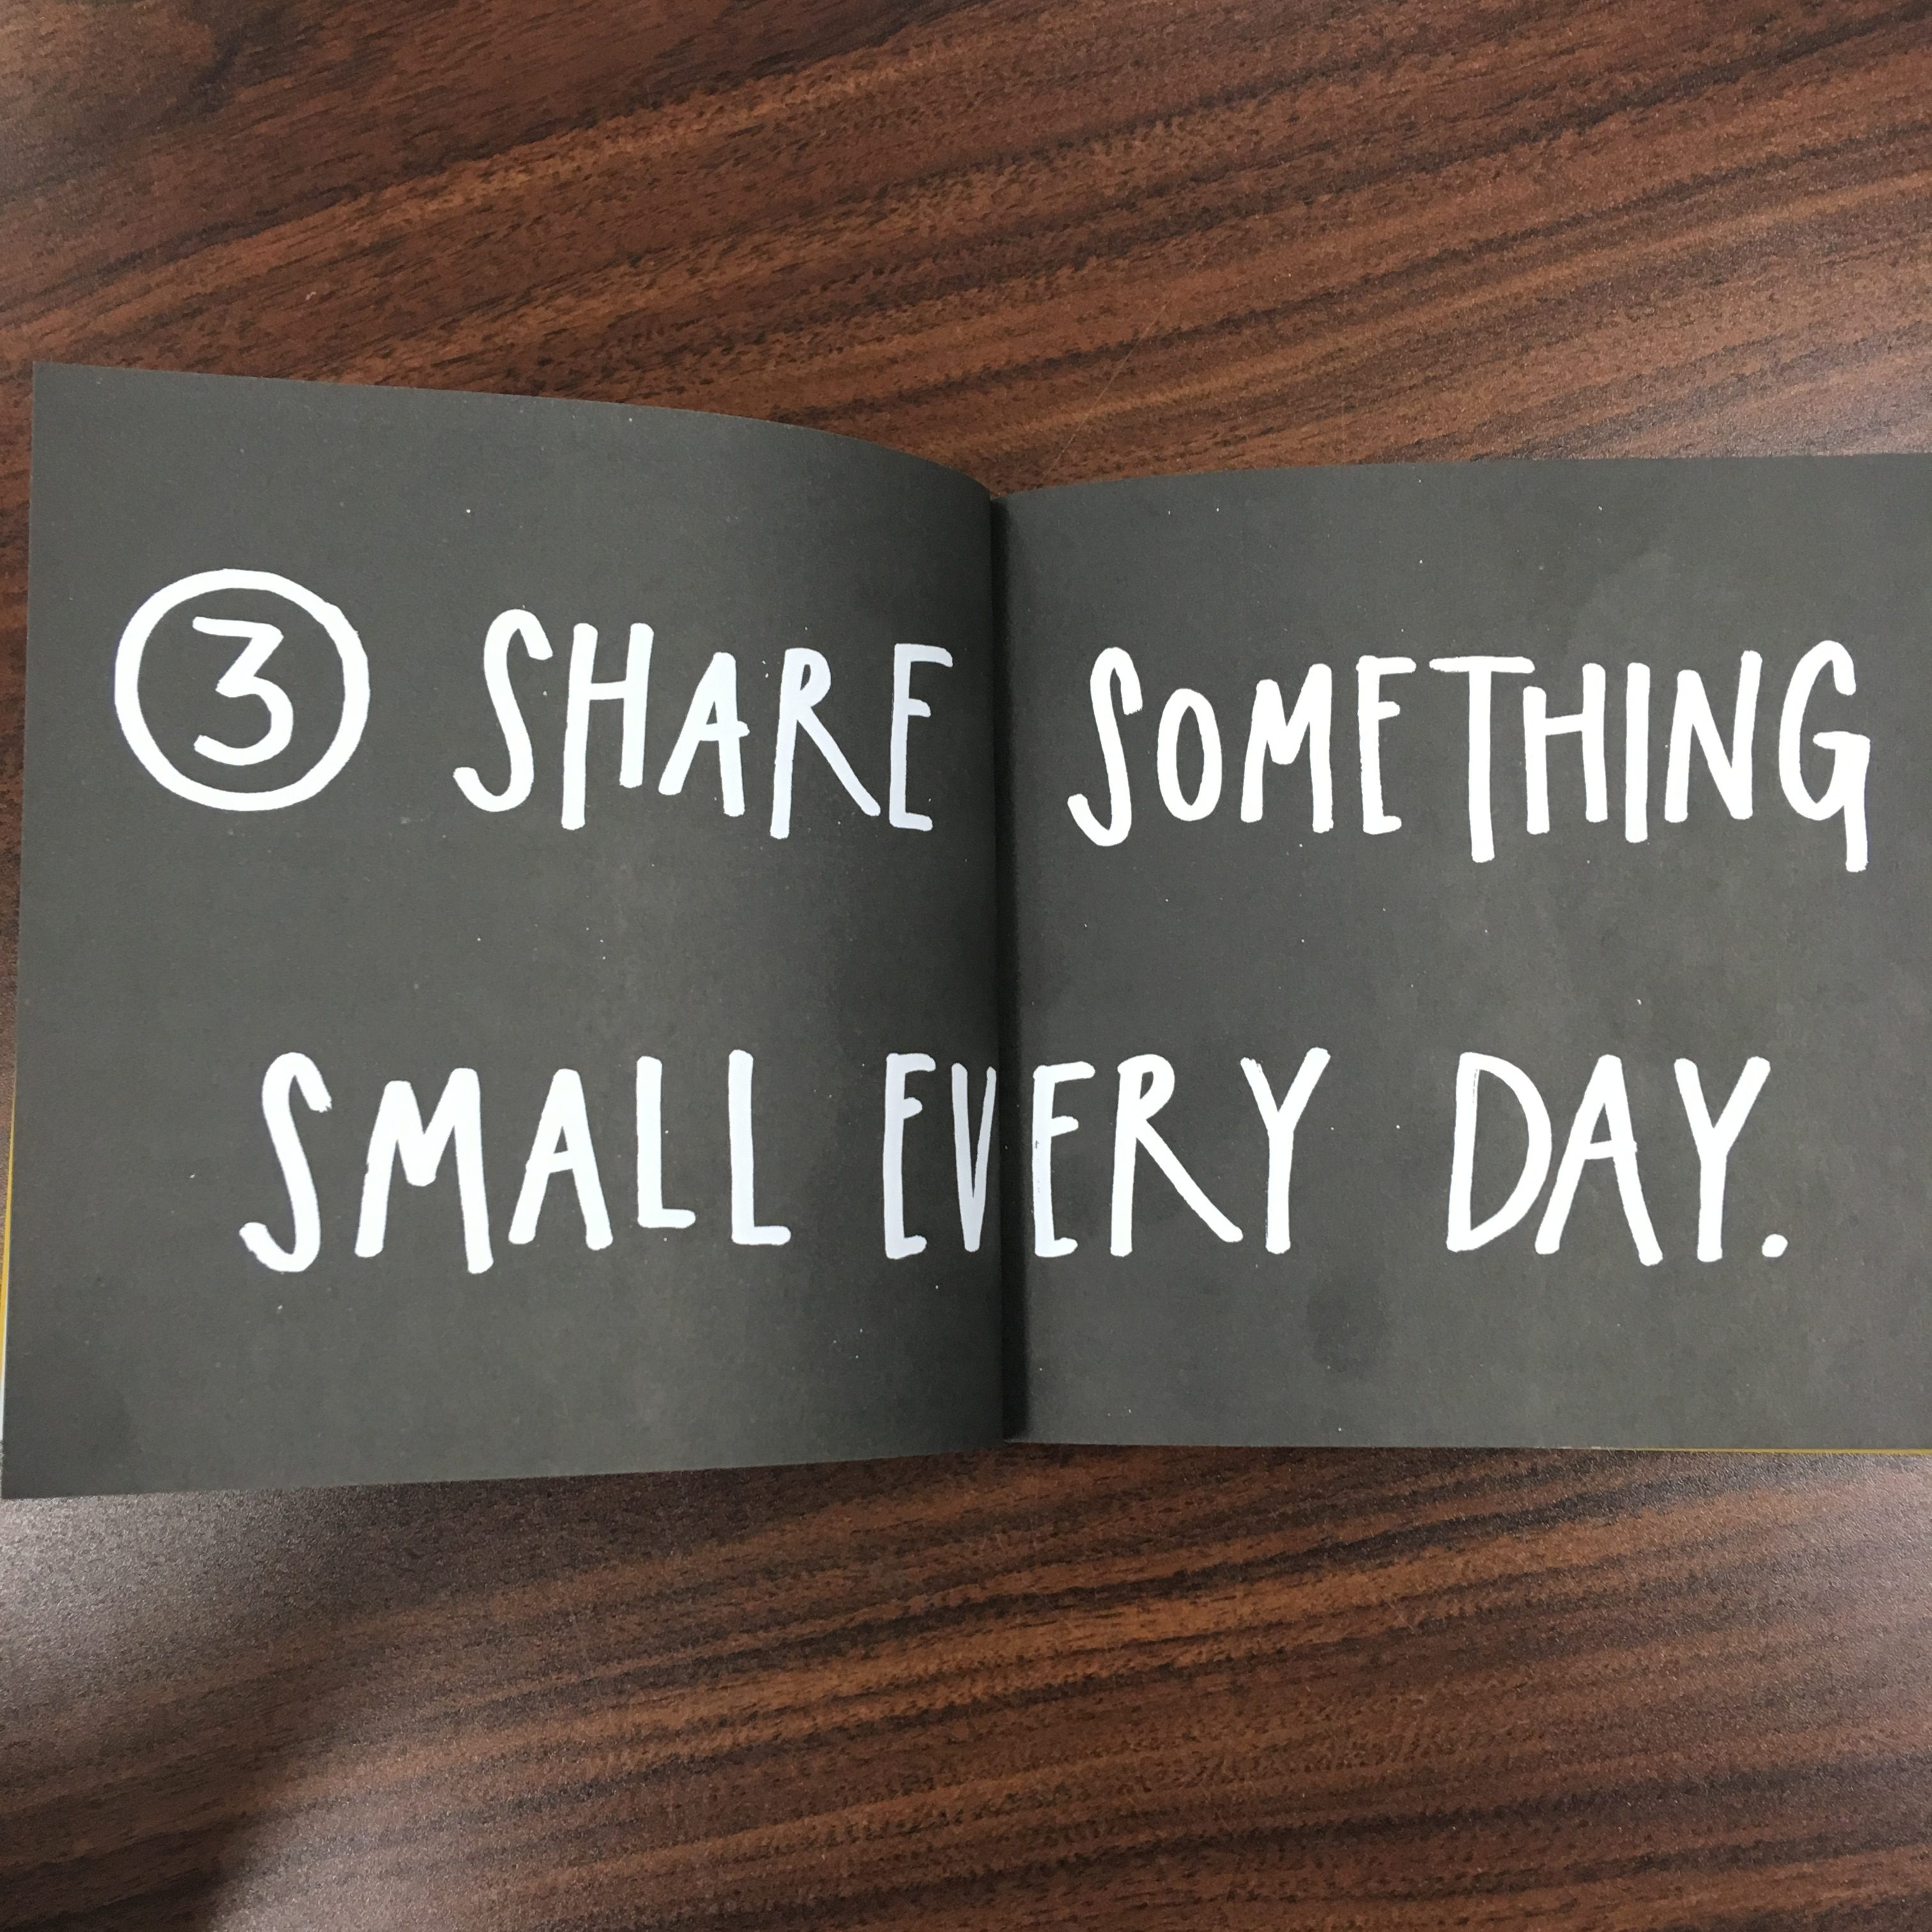 Show your Work by Austin Kleon share something small every day